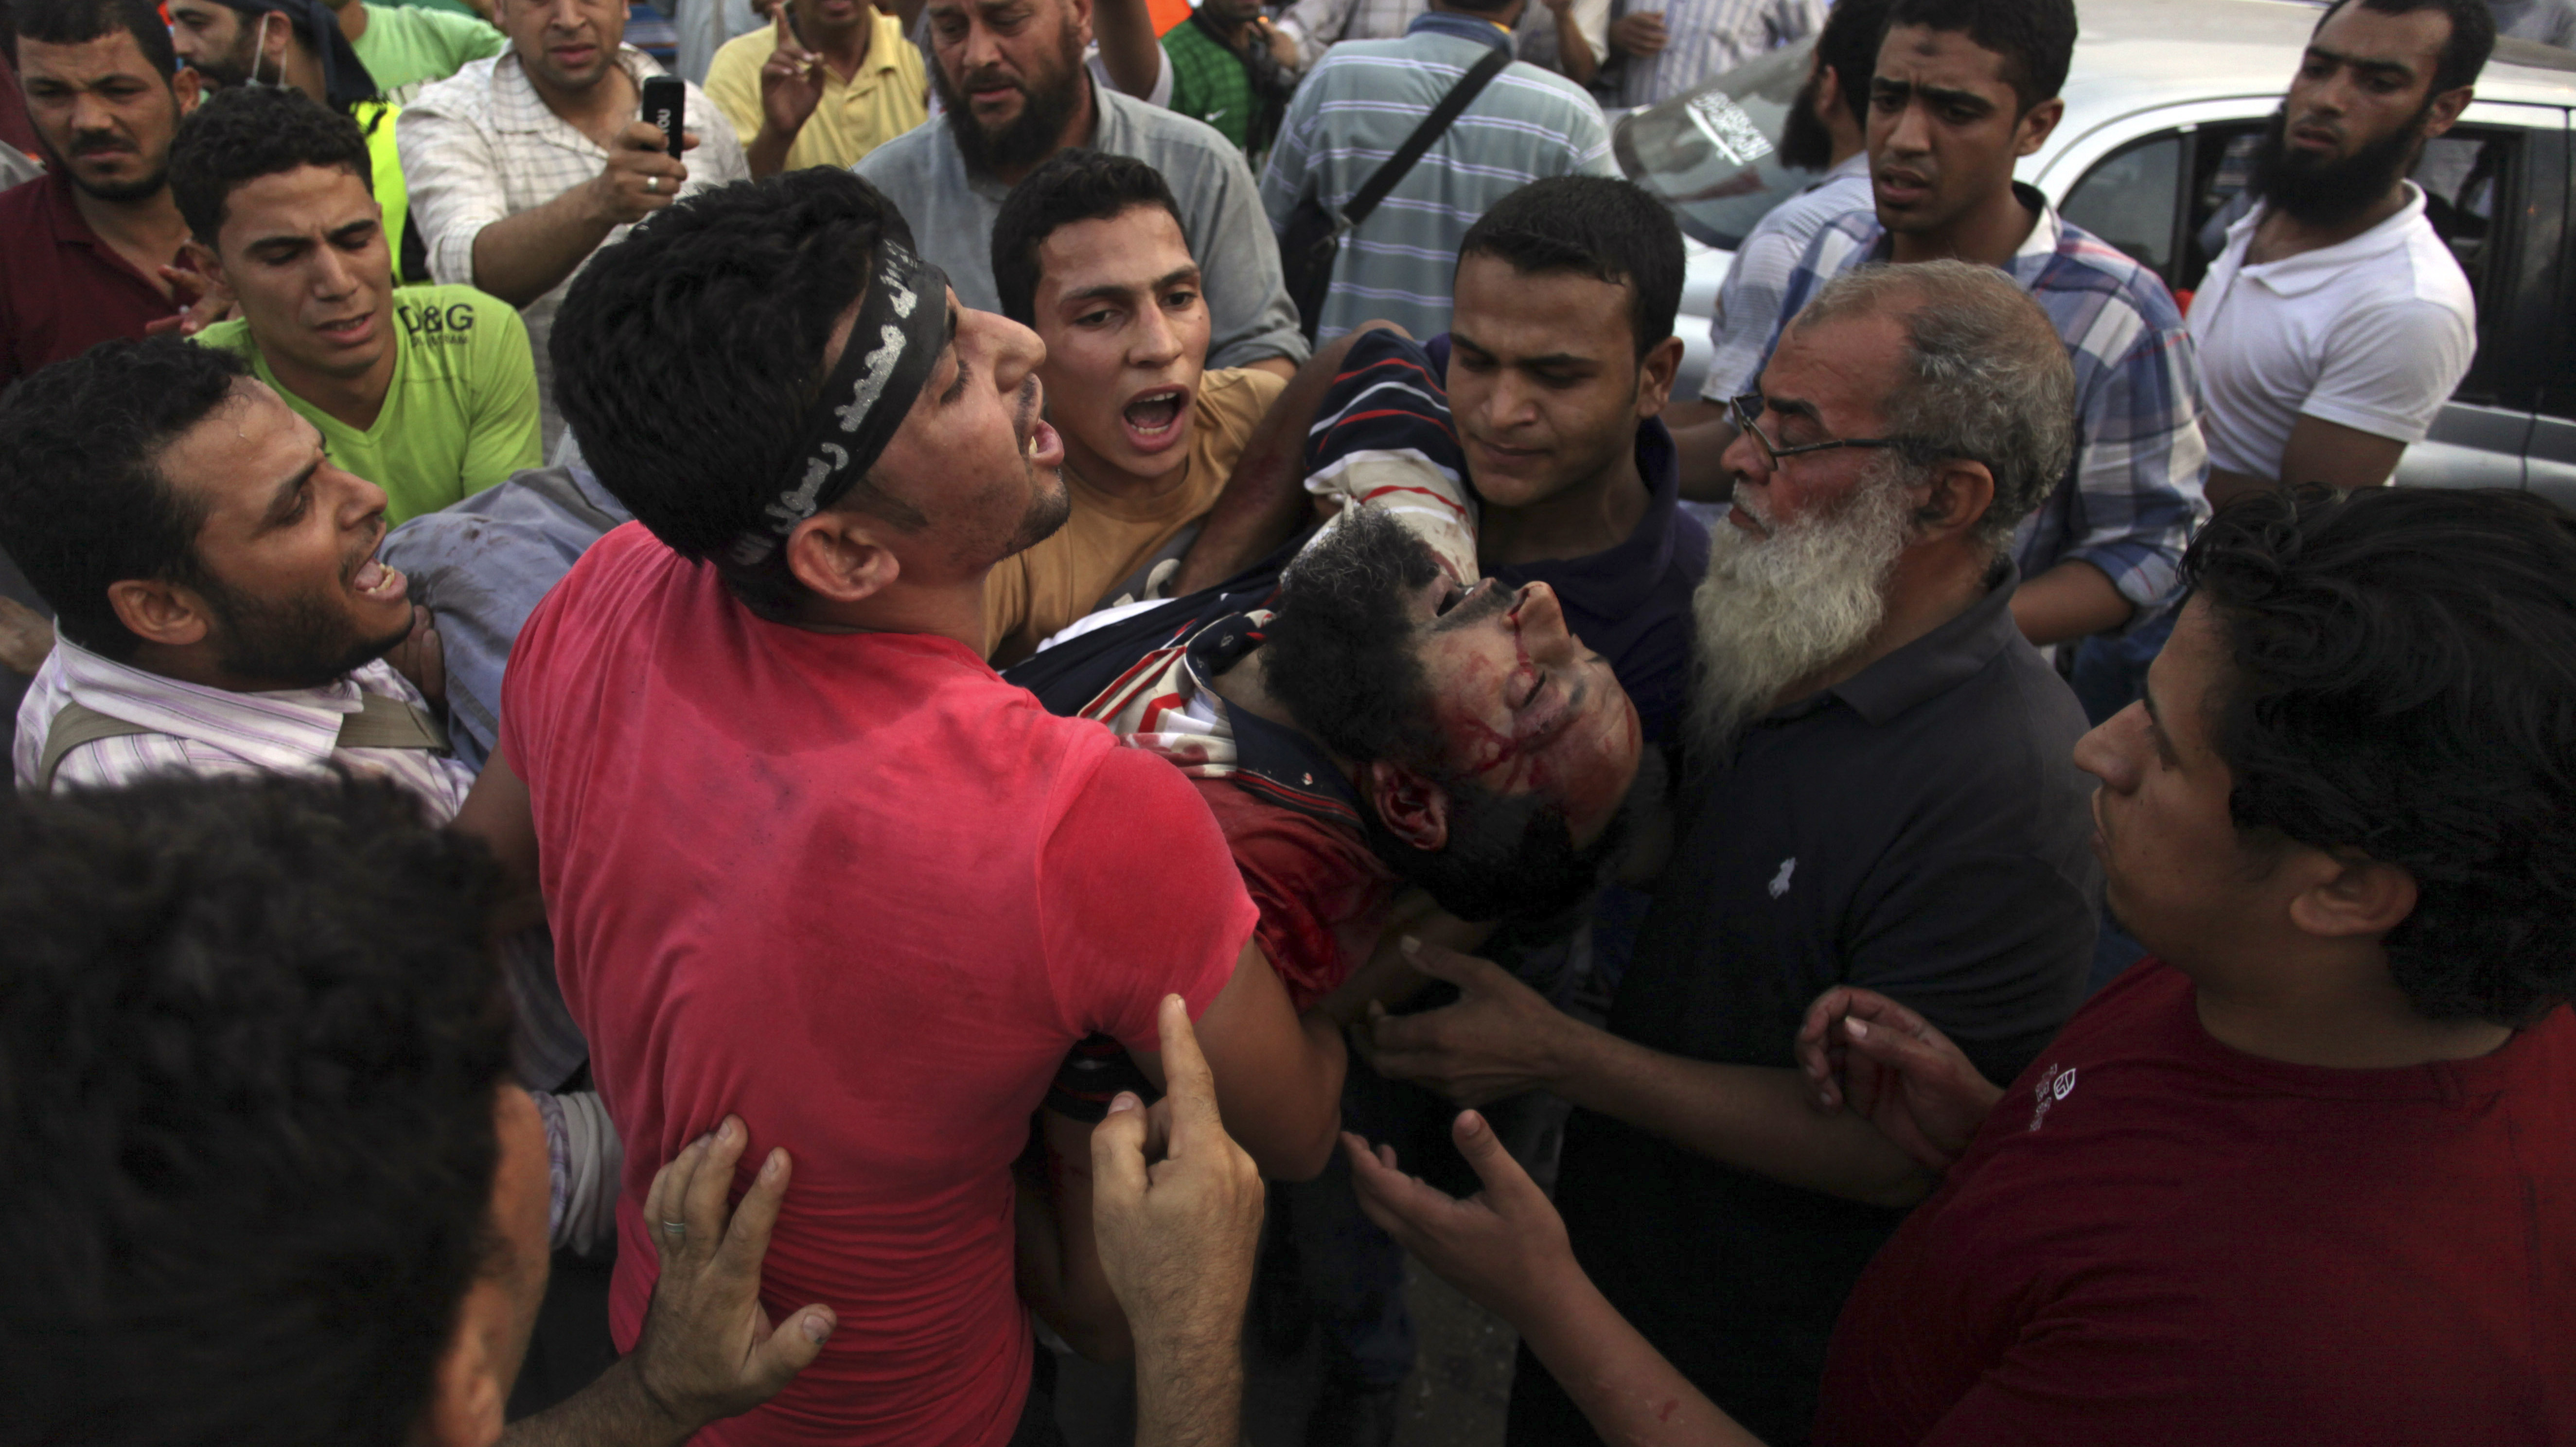 Scores Killed As Egypt Demonstrations Turn Deadly